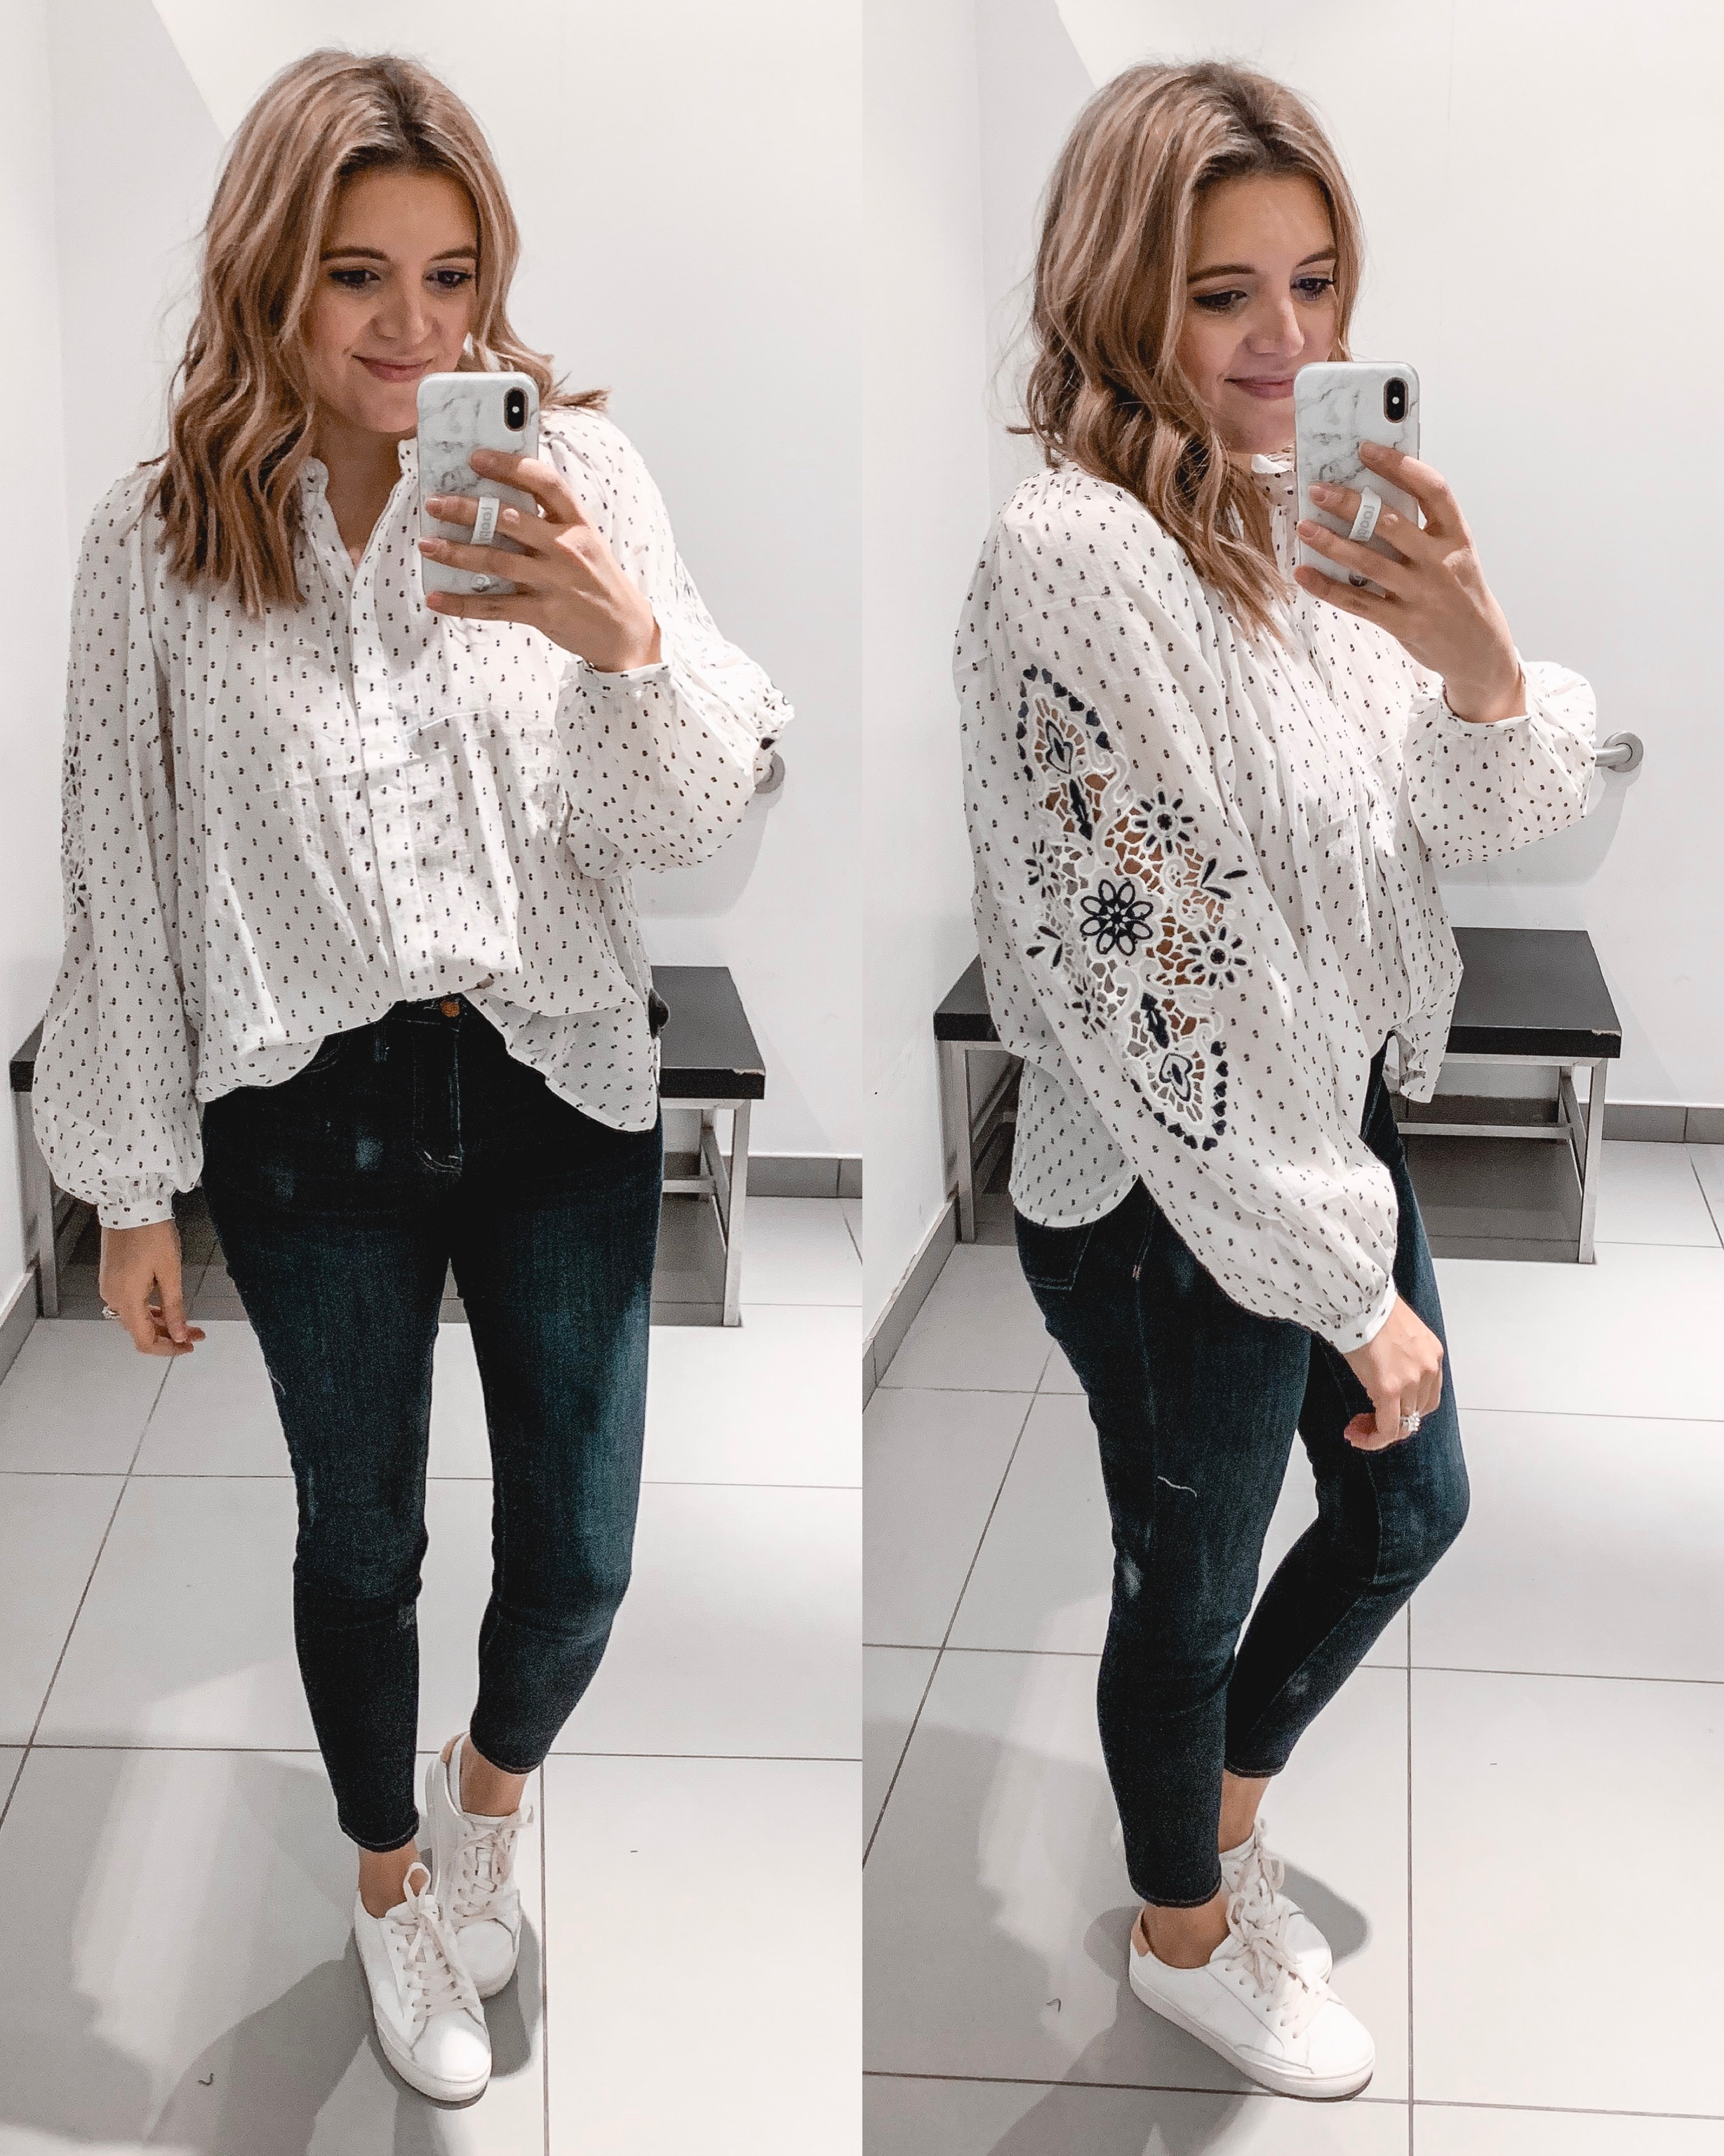 Affordable style blogger Lauren Dix shares an H&M try on February with over ten early spring outfits.